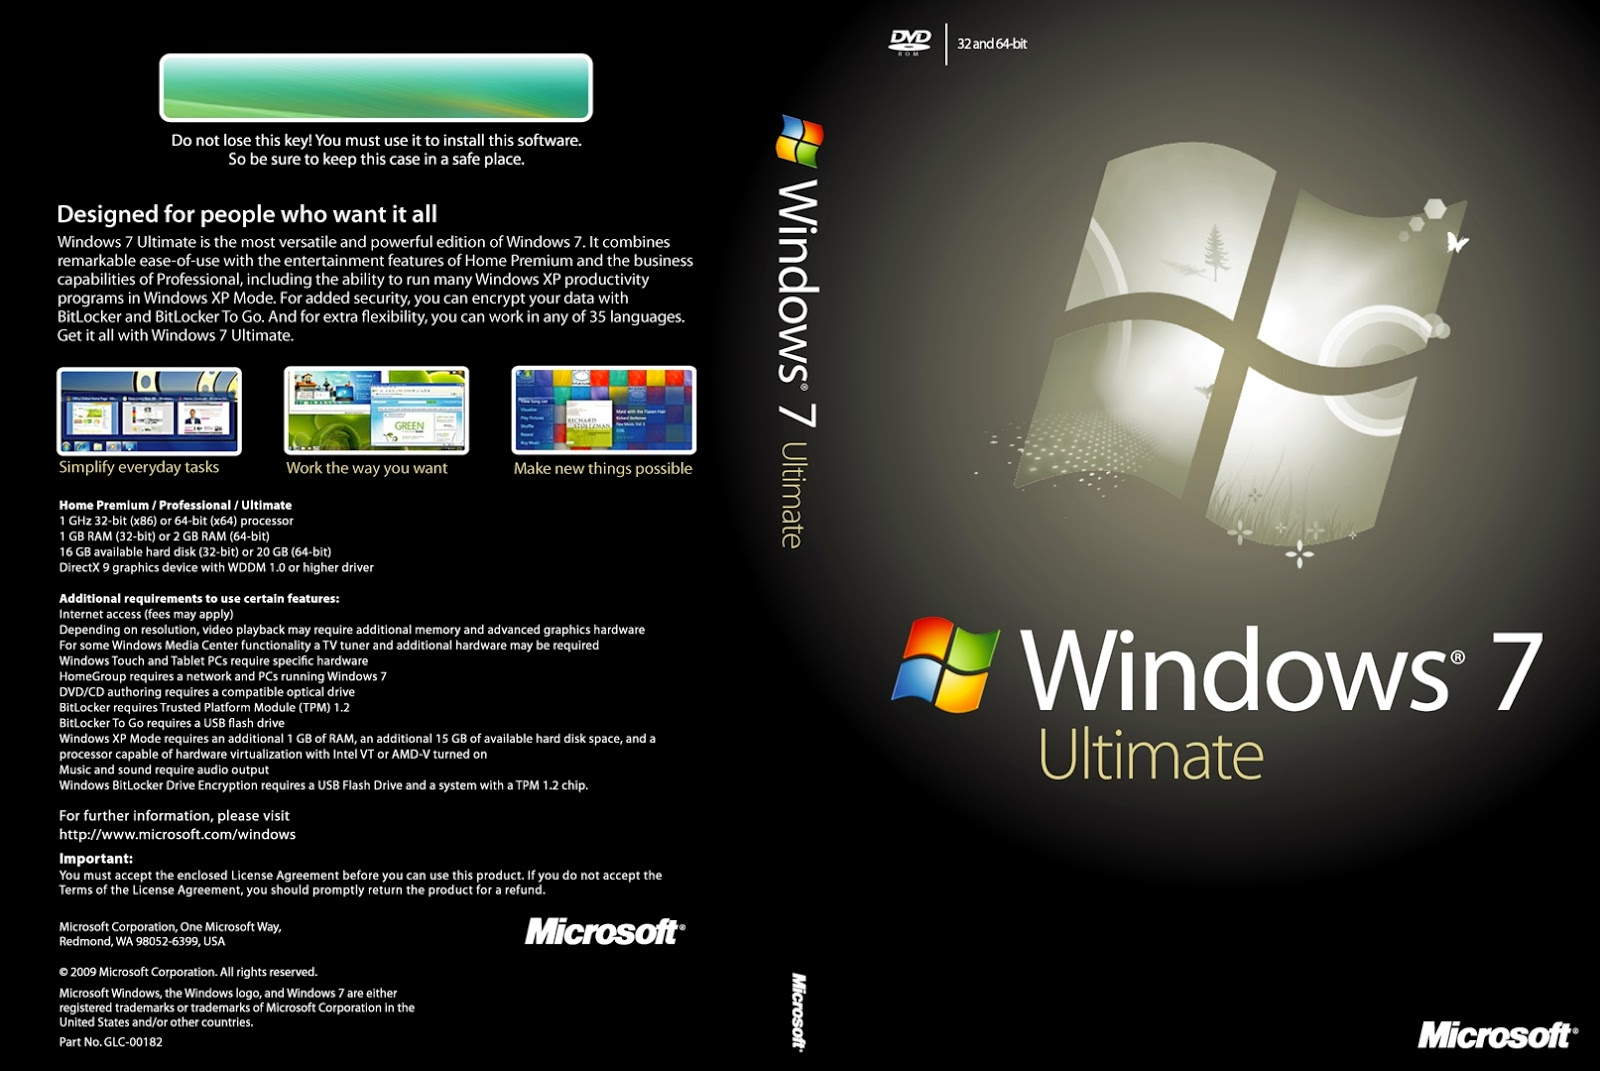 Windows 7 ultimate 3264bits